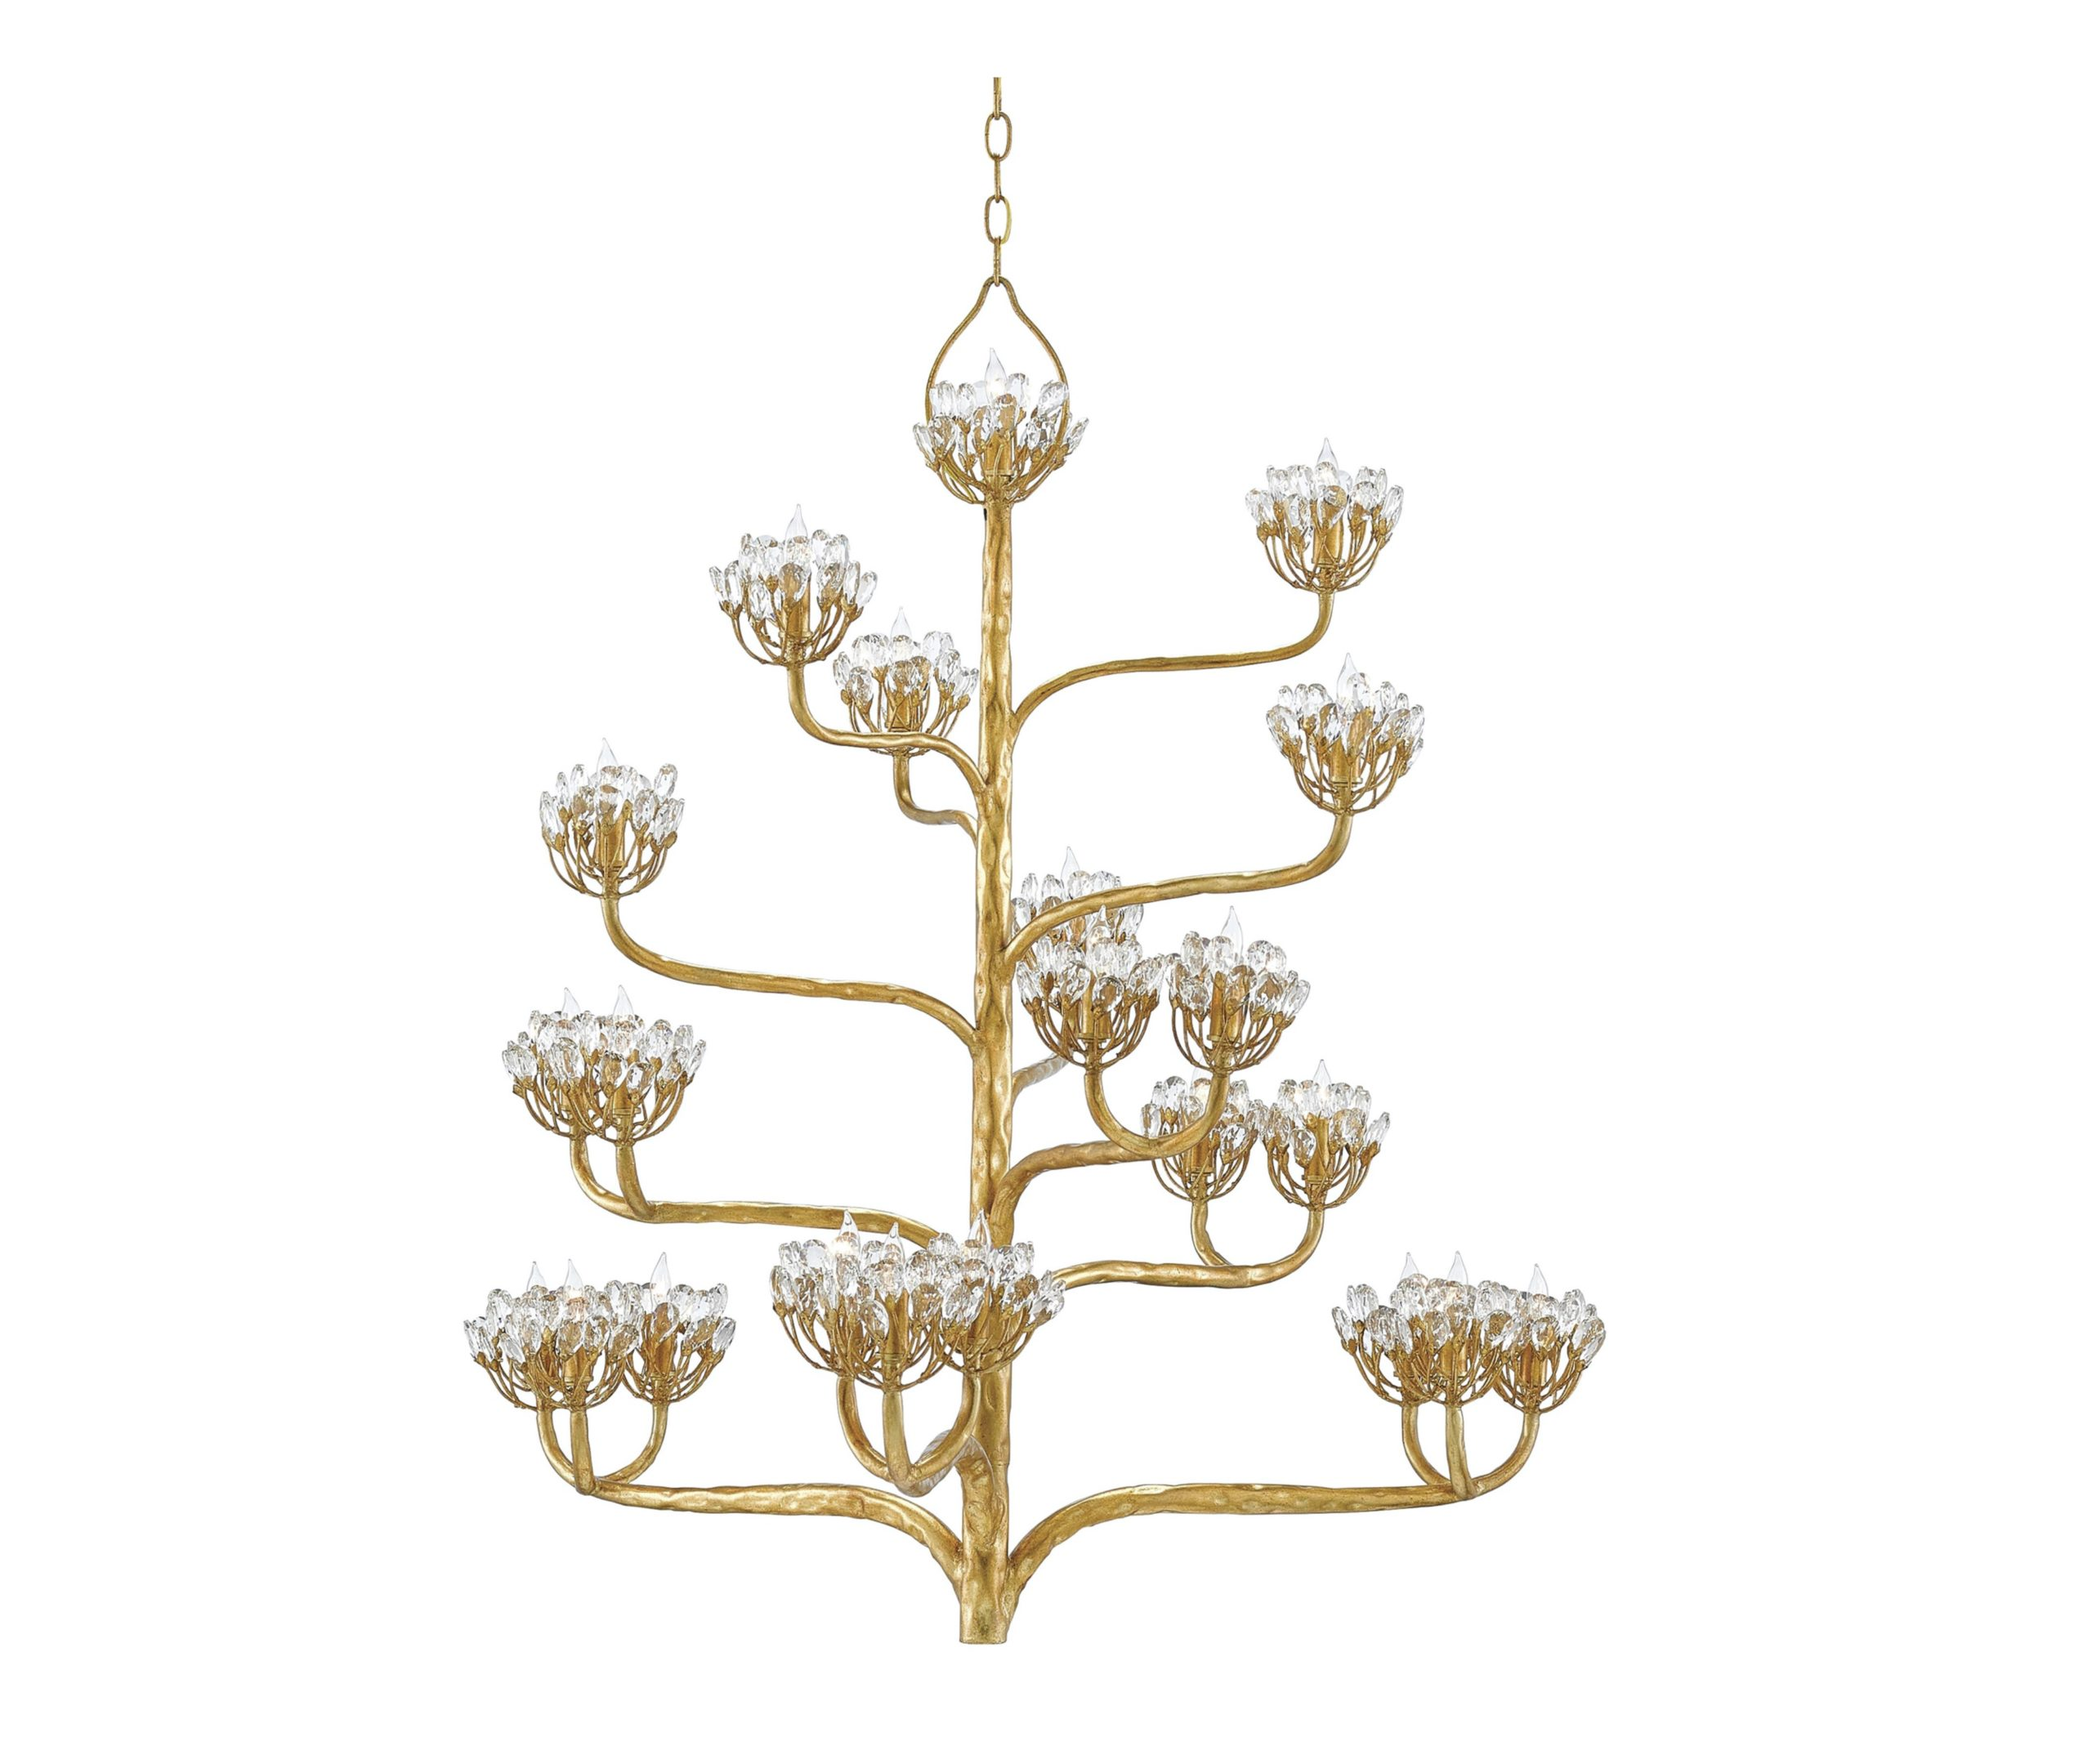 NYDC_WNWN_currey_and_co_products_agave_americana_gold_chandelier_9000-0157_